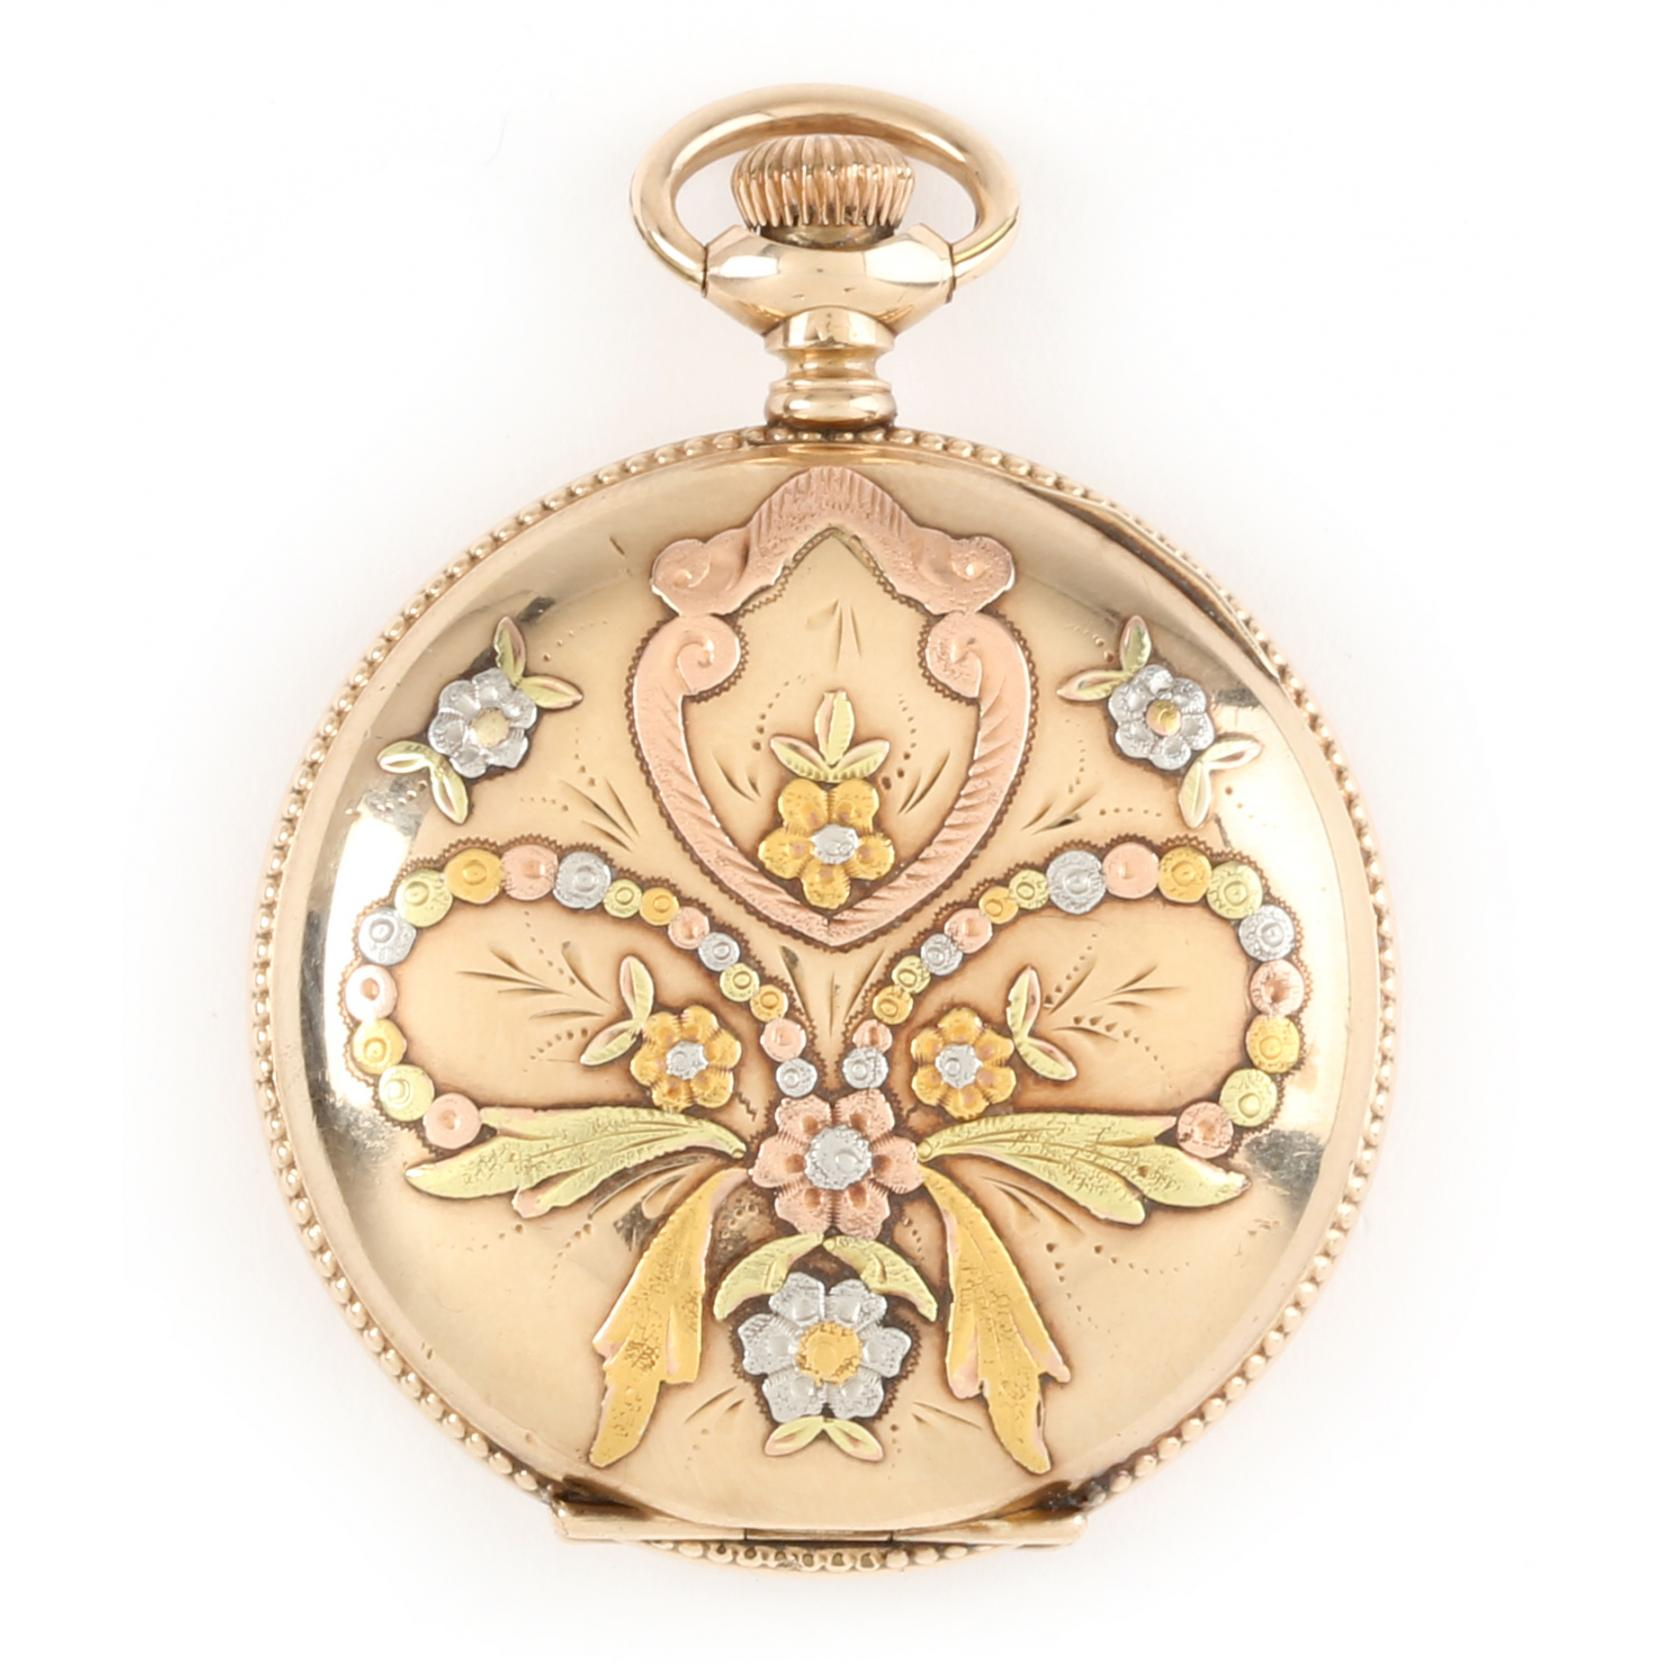 gold-filled-pocket-watch-elgin